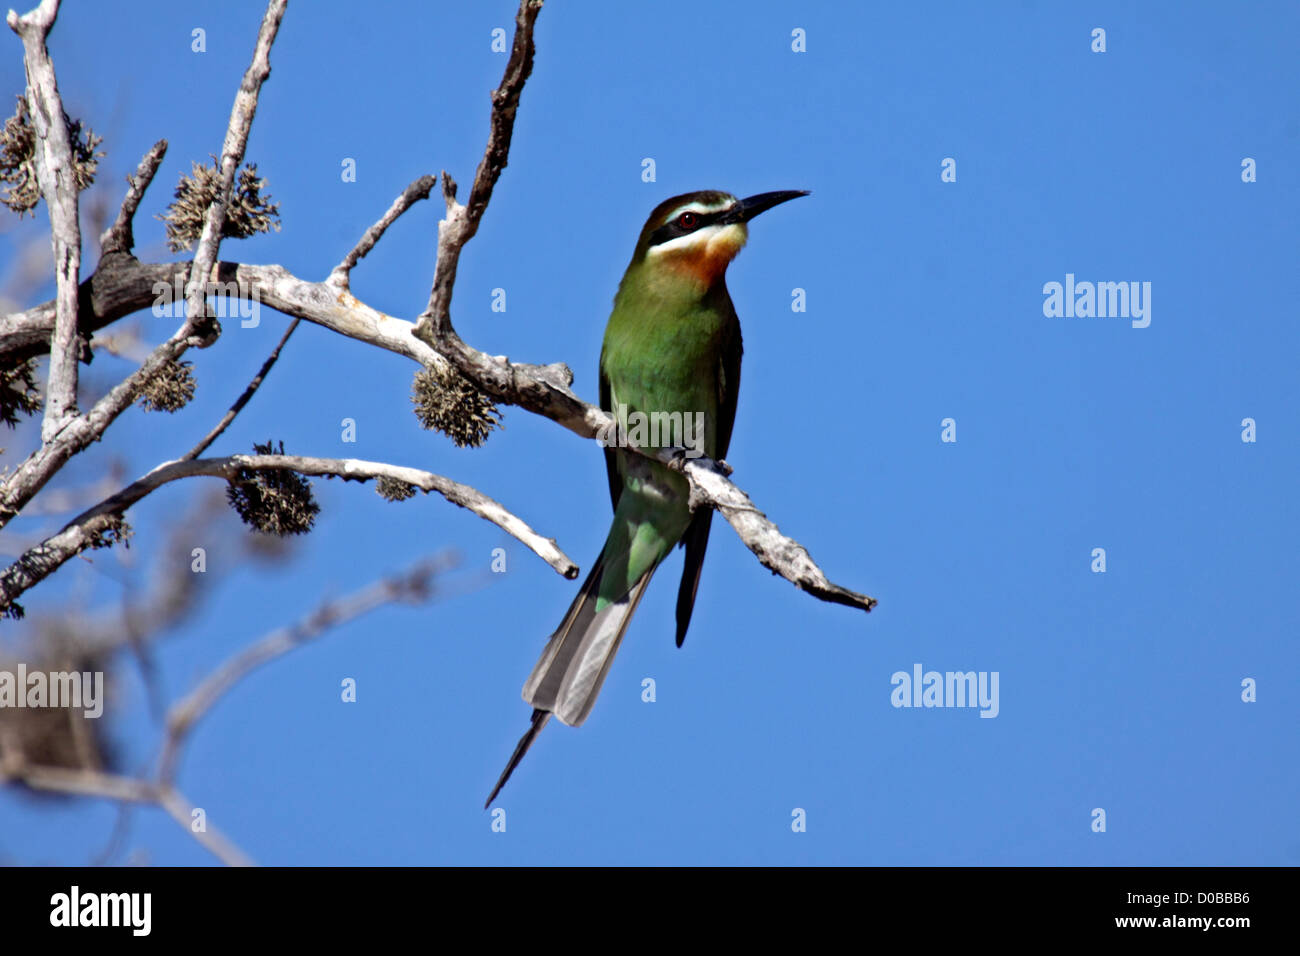 Madagascar bee eater in a tree in Madagascar - Stock Image